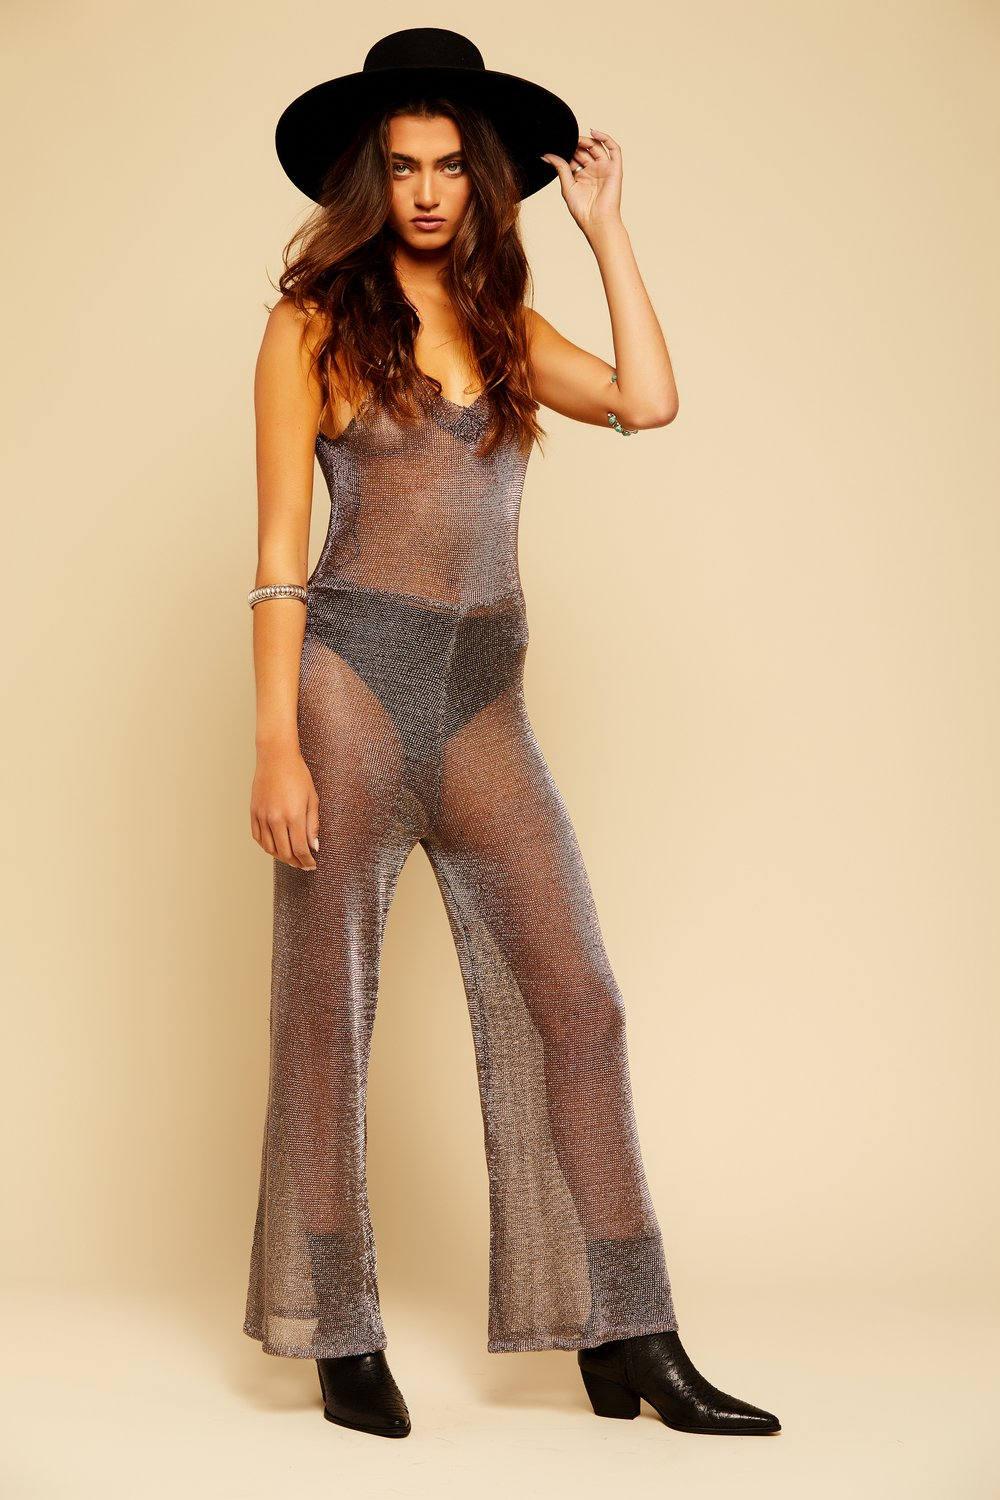 burning-man-essential-clothing-gunmetal-maxi-mesh-dress-curio-what-to-wear-daytime.jpg